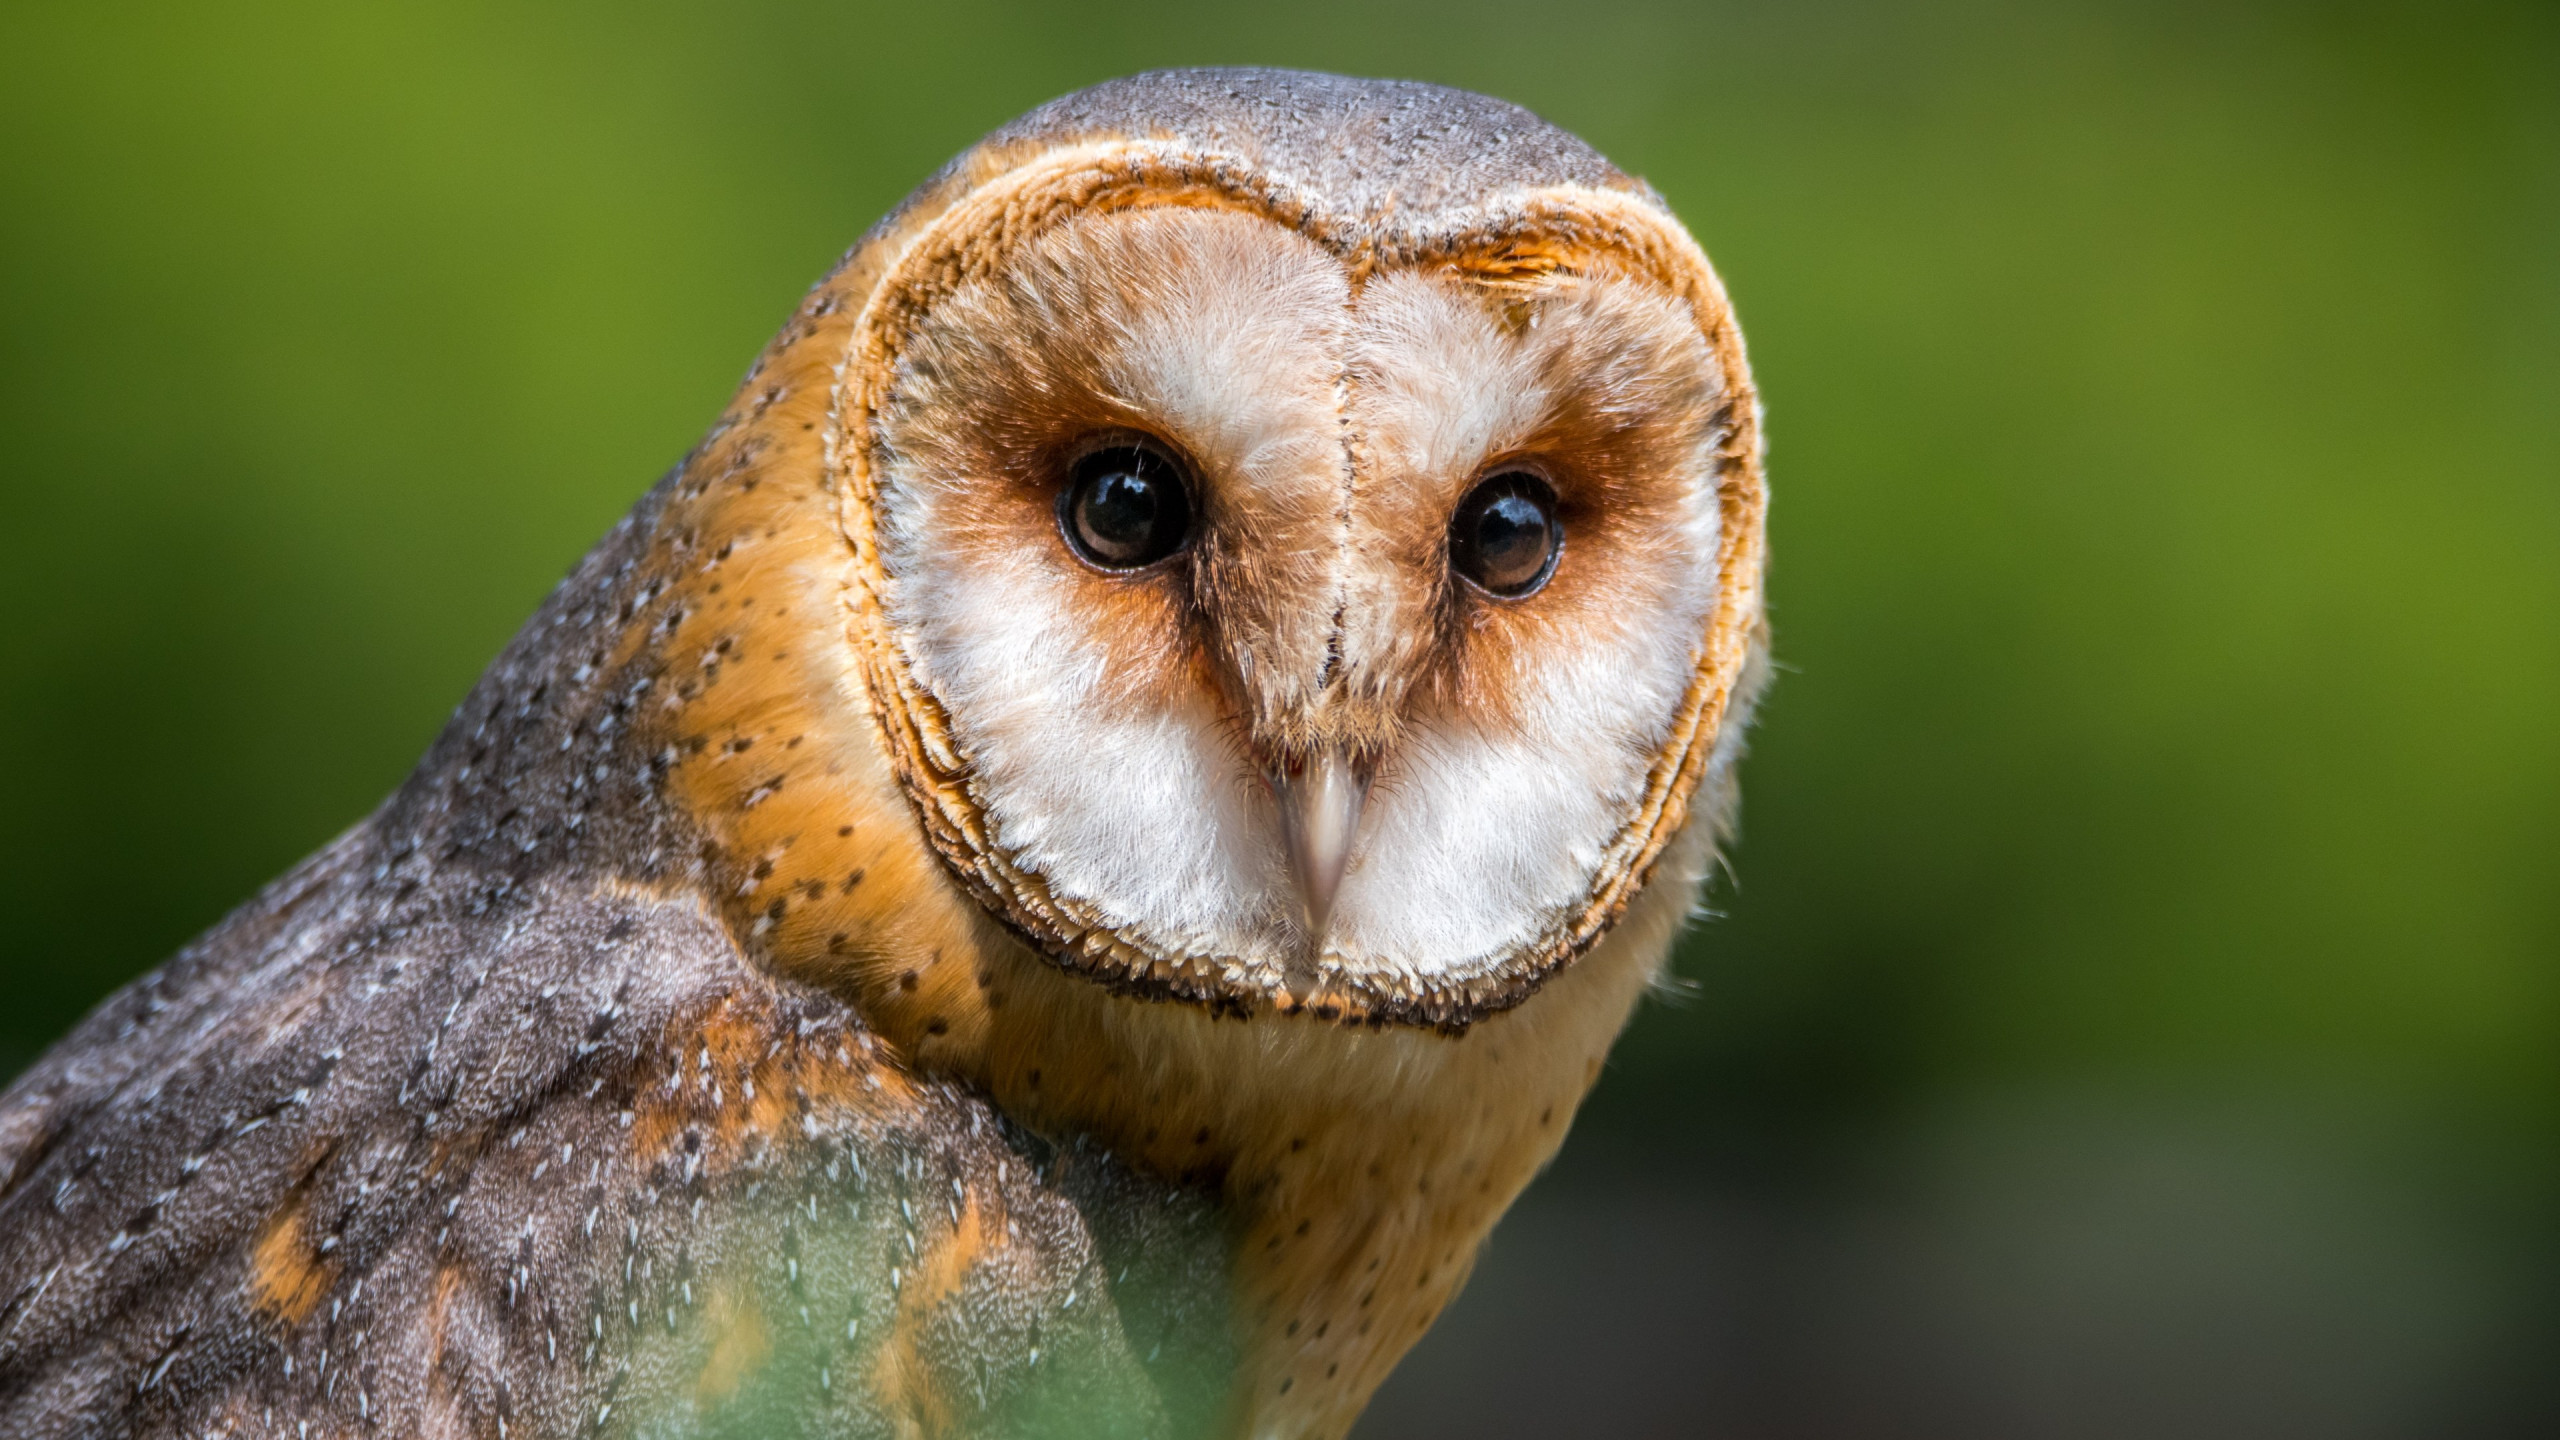 Barn Owl wallpaper 2560x1440